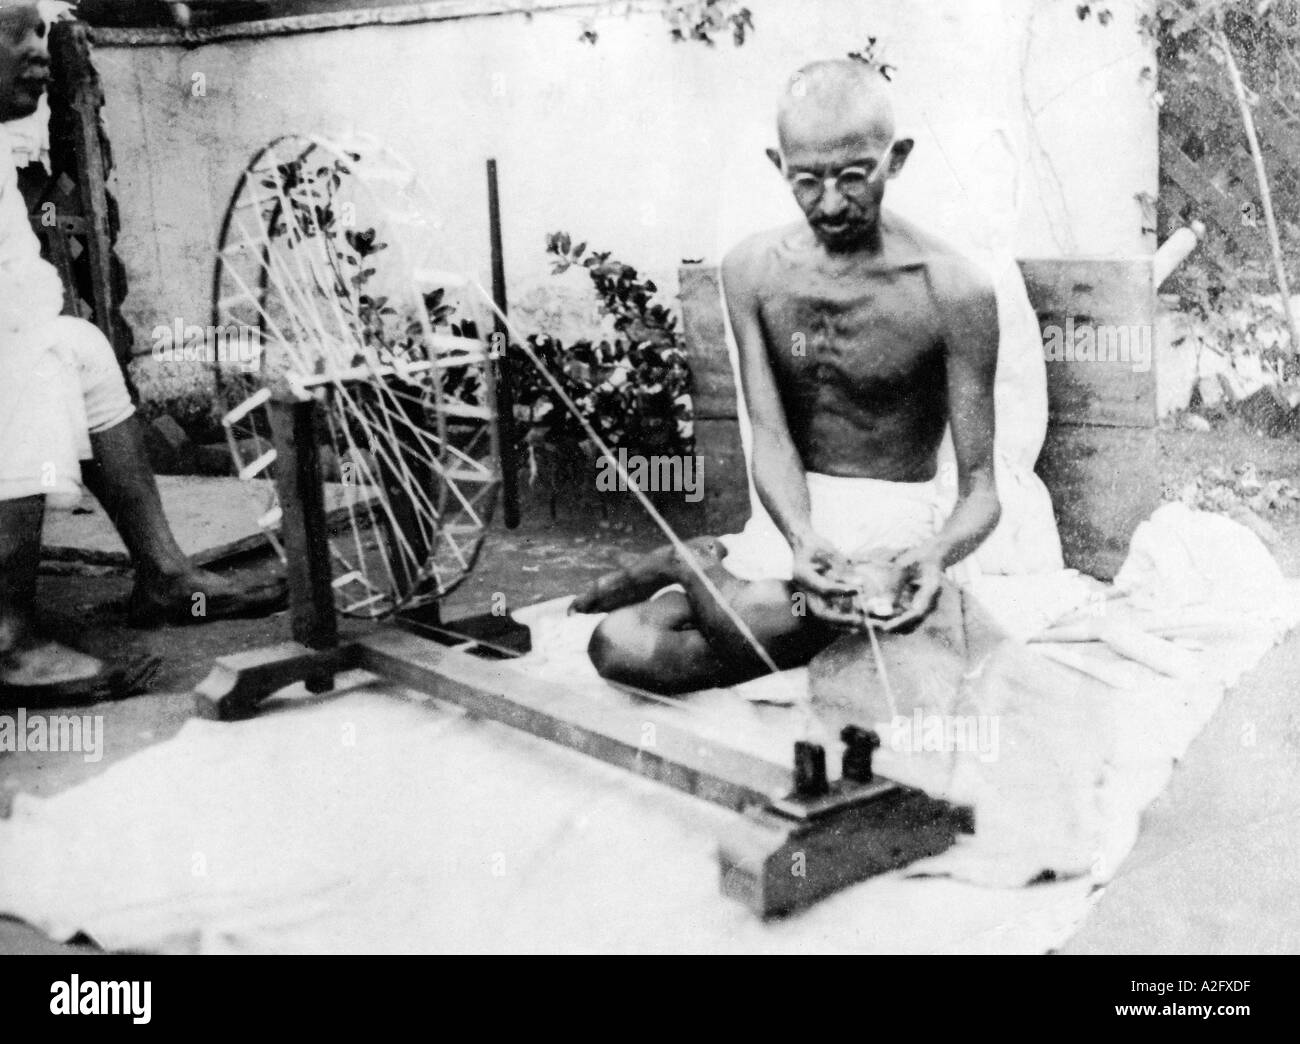 Gandhi Spinning Wheel